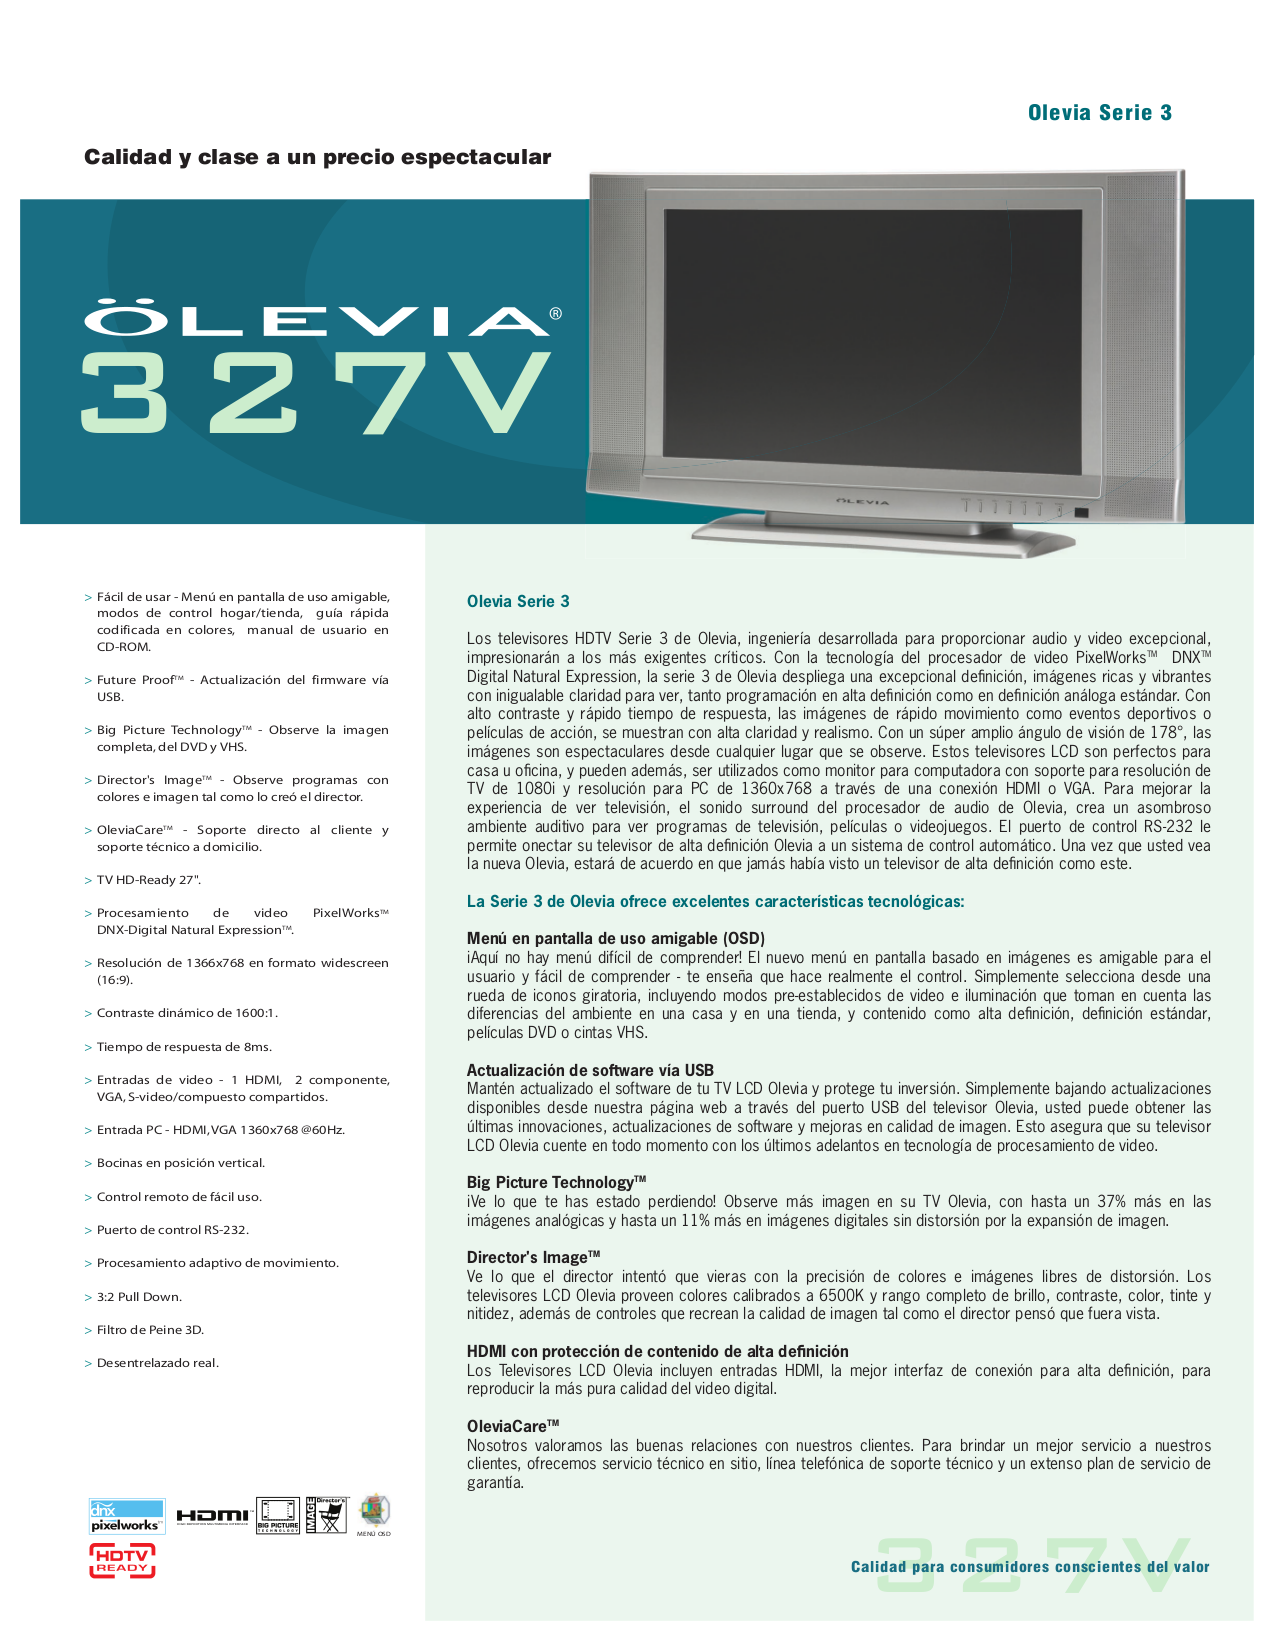 Service manual: olevia 232 s12 rev1: free download, borrow, and.